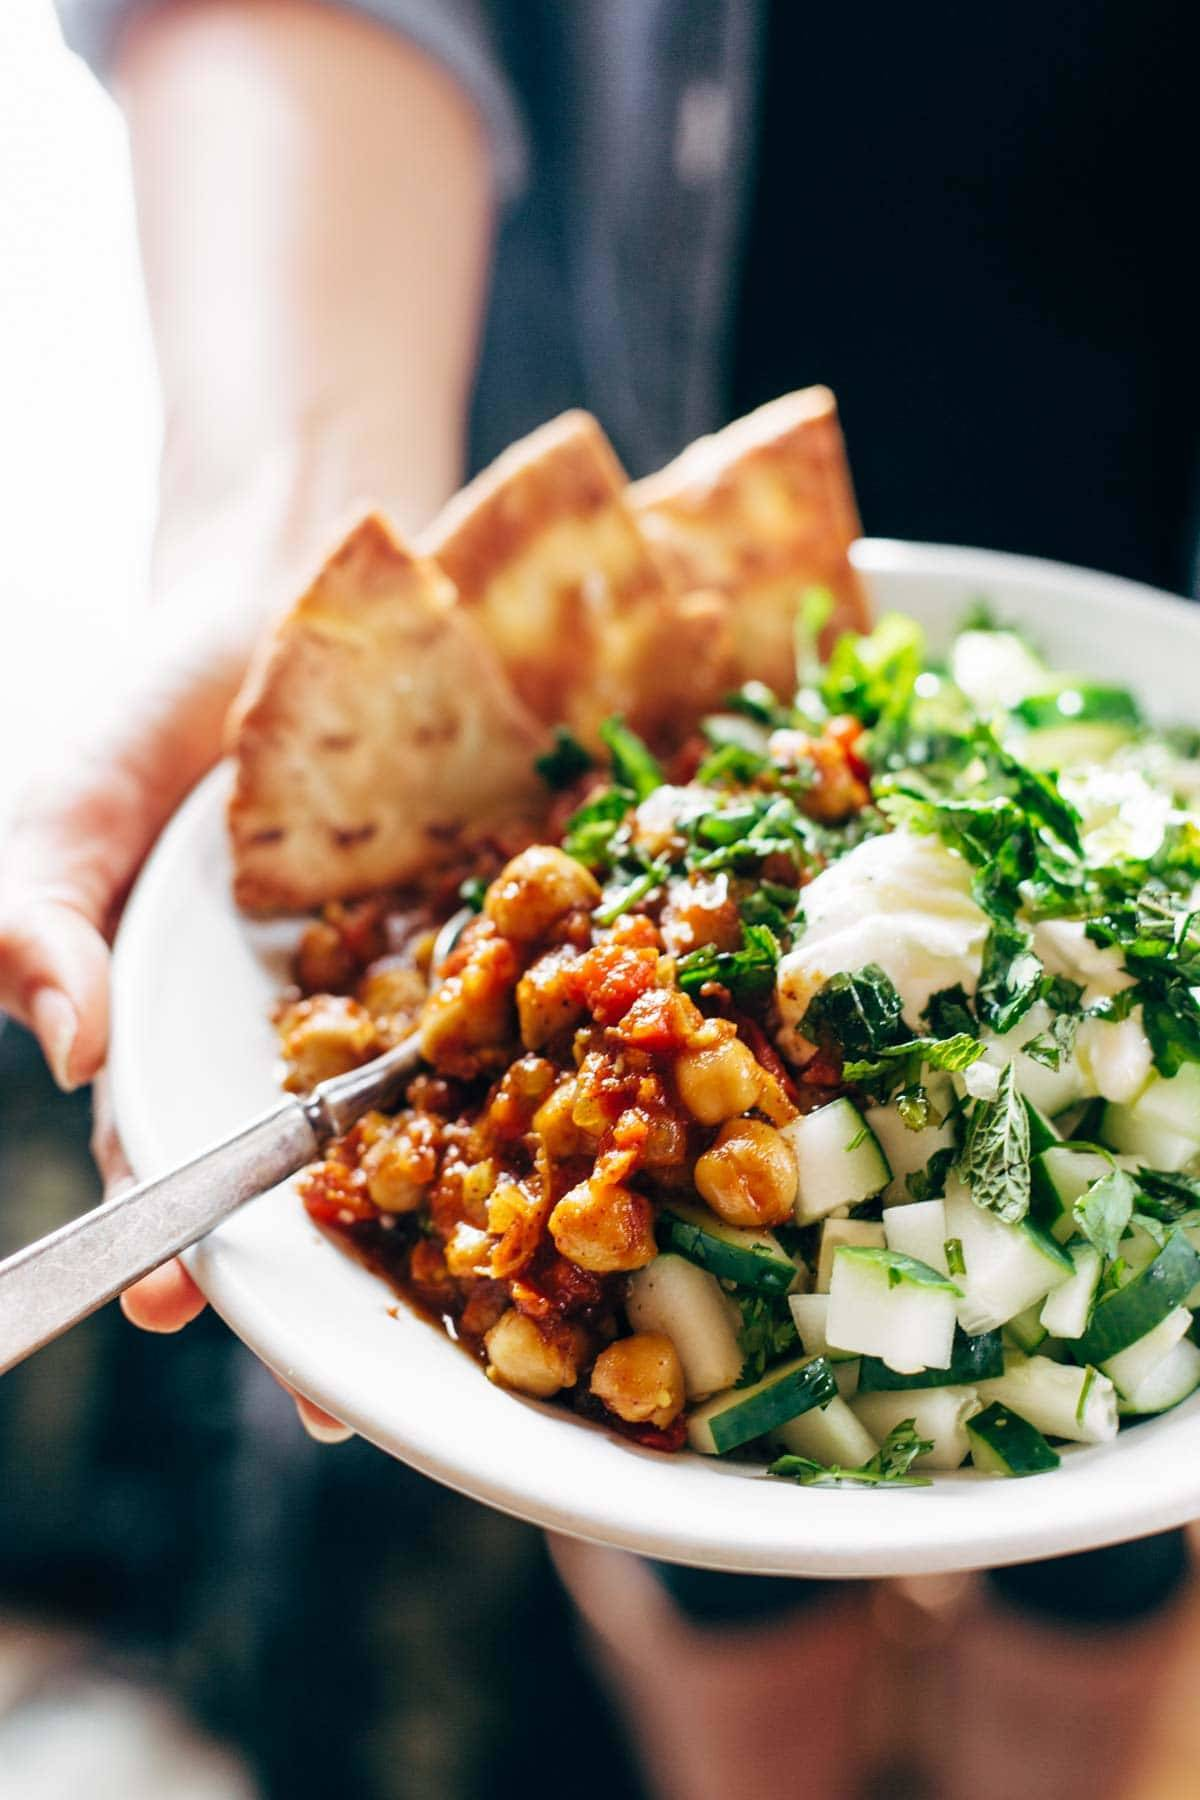 Detox moroccan spiced chickpea glow bowl recipe pinch of yum hands holding detox moroccan chickpea glow bowl forumfinder Gallery